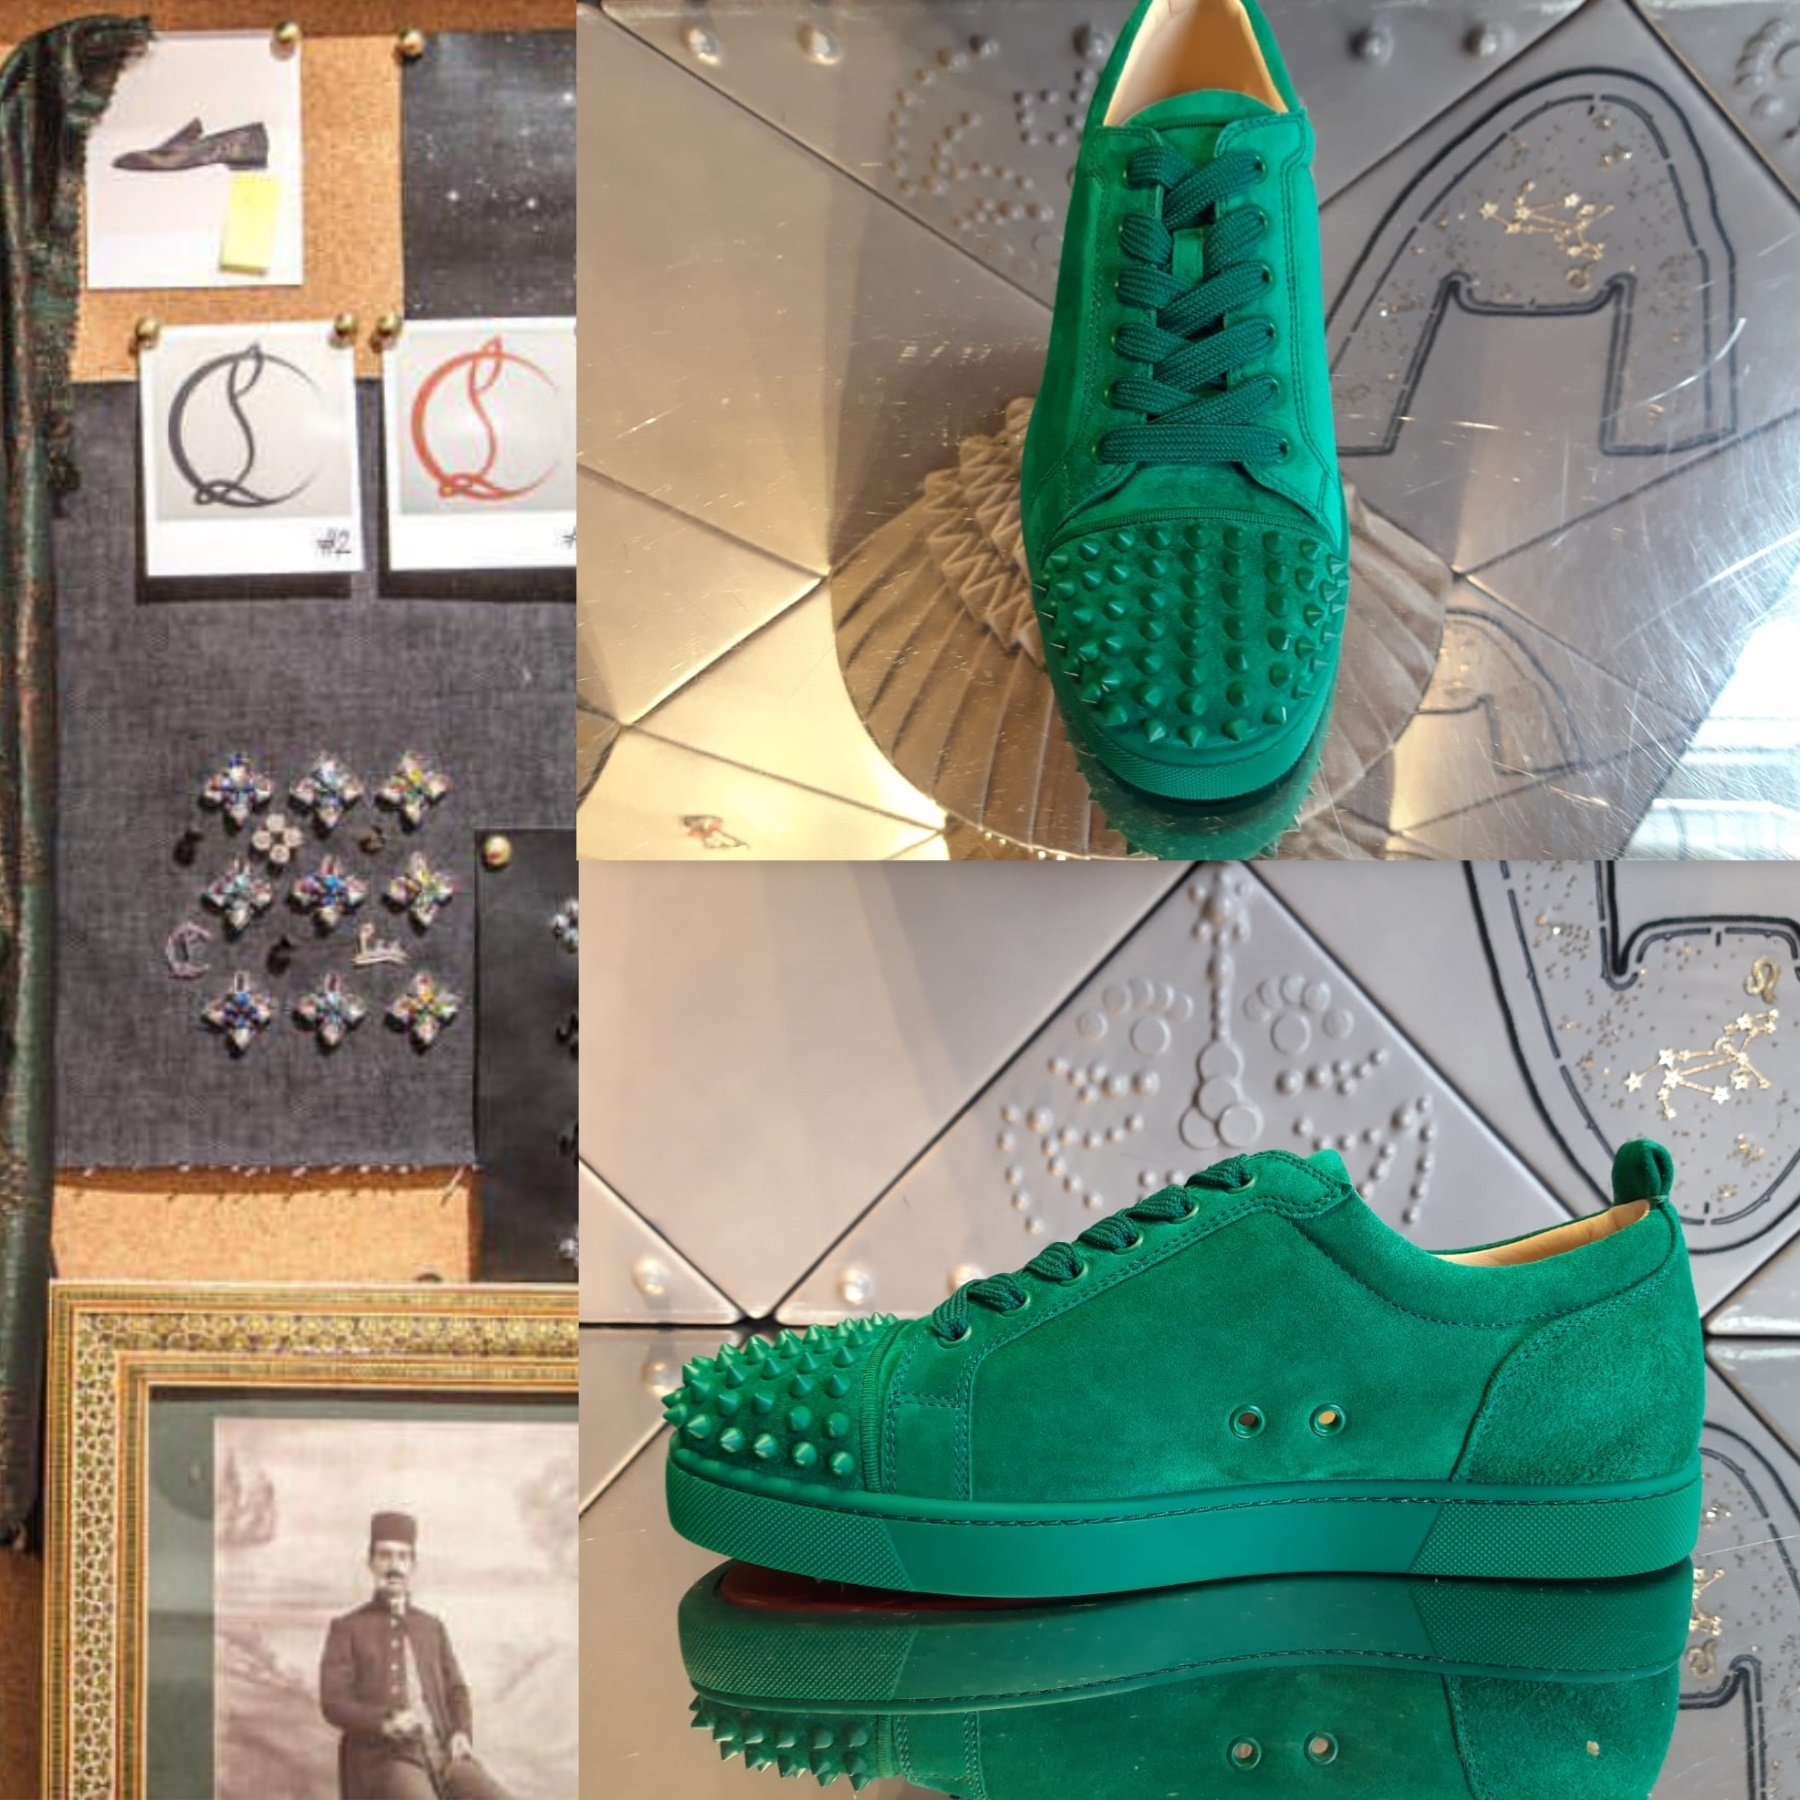 reputable site abb4f 30dae Christian Louboutin 2019 SS Christian Louboutin Sneakers (LOUIS JUNIOR  SPIKES)